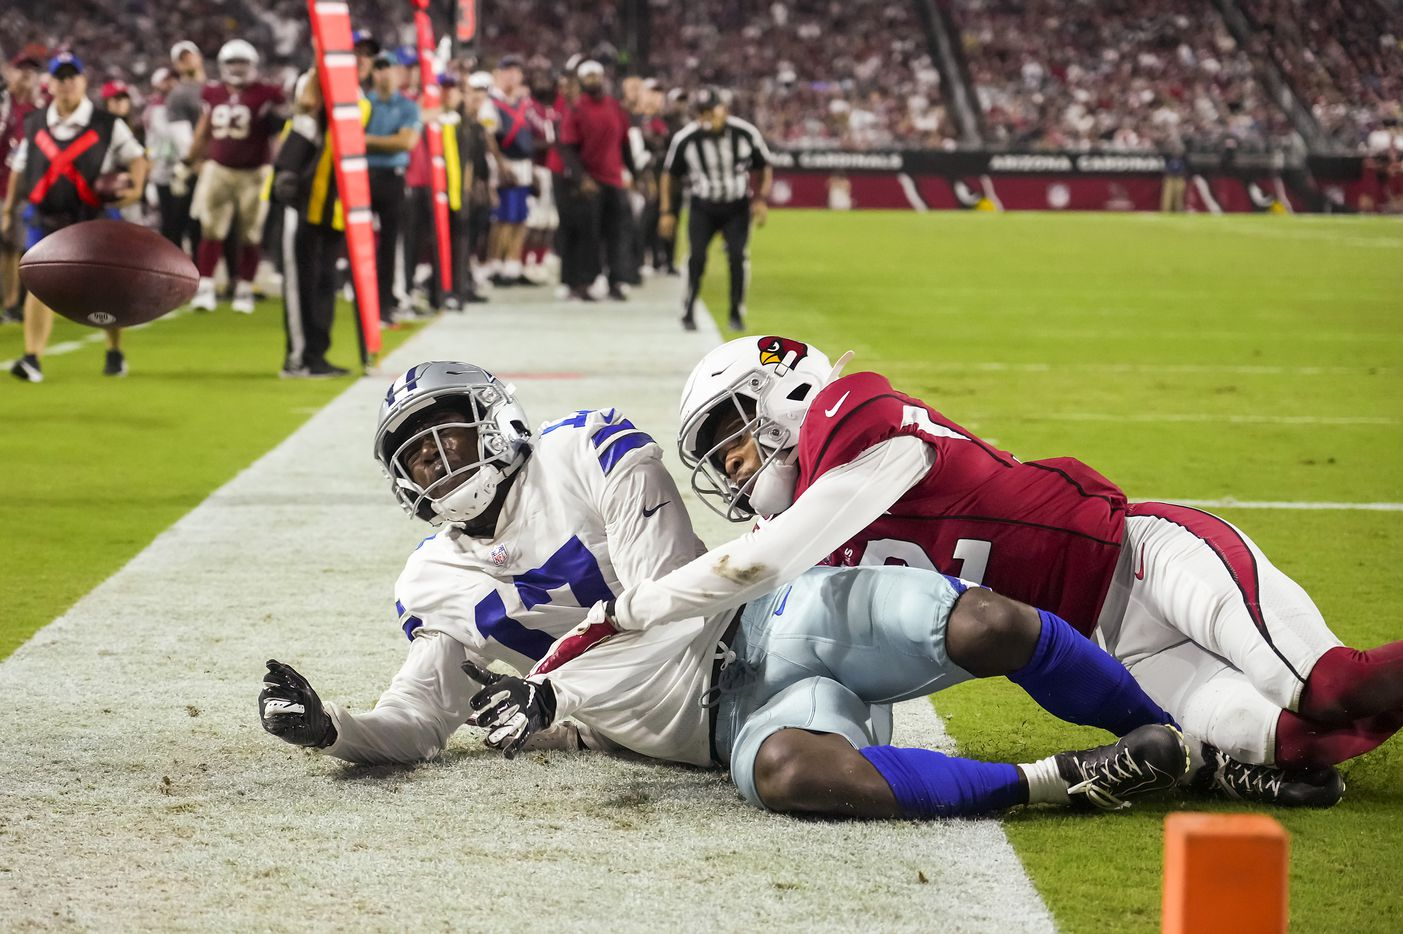 Dallas Cowboys wide receiver Malik Turner (17) is injured on a pass play as Arizona Cardinals cornerback Tay Gowan (32) comes down on his left ankle during the second half of a preseason NFL football game at State Farm Stadium on Friday, Aug. 13, 2021, in Glendale, Ariz.